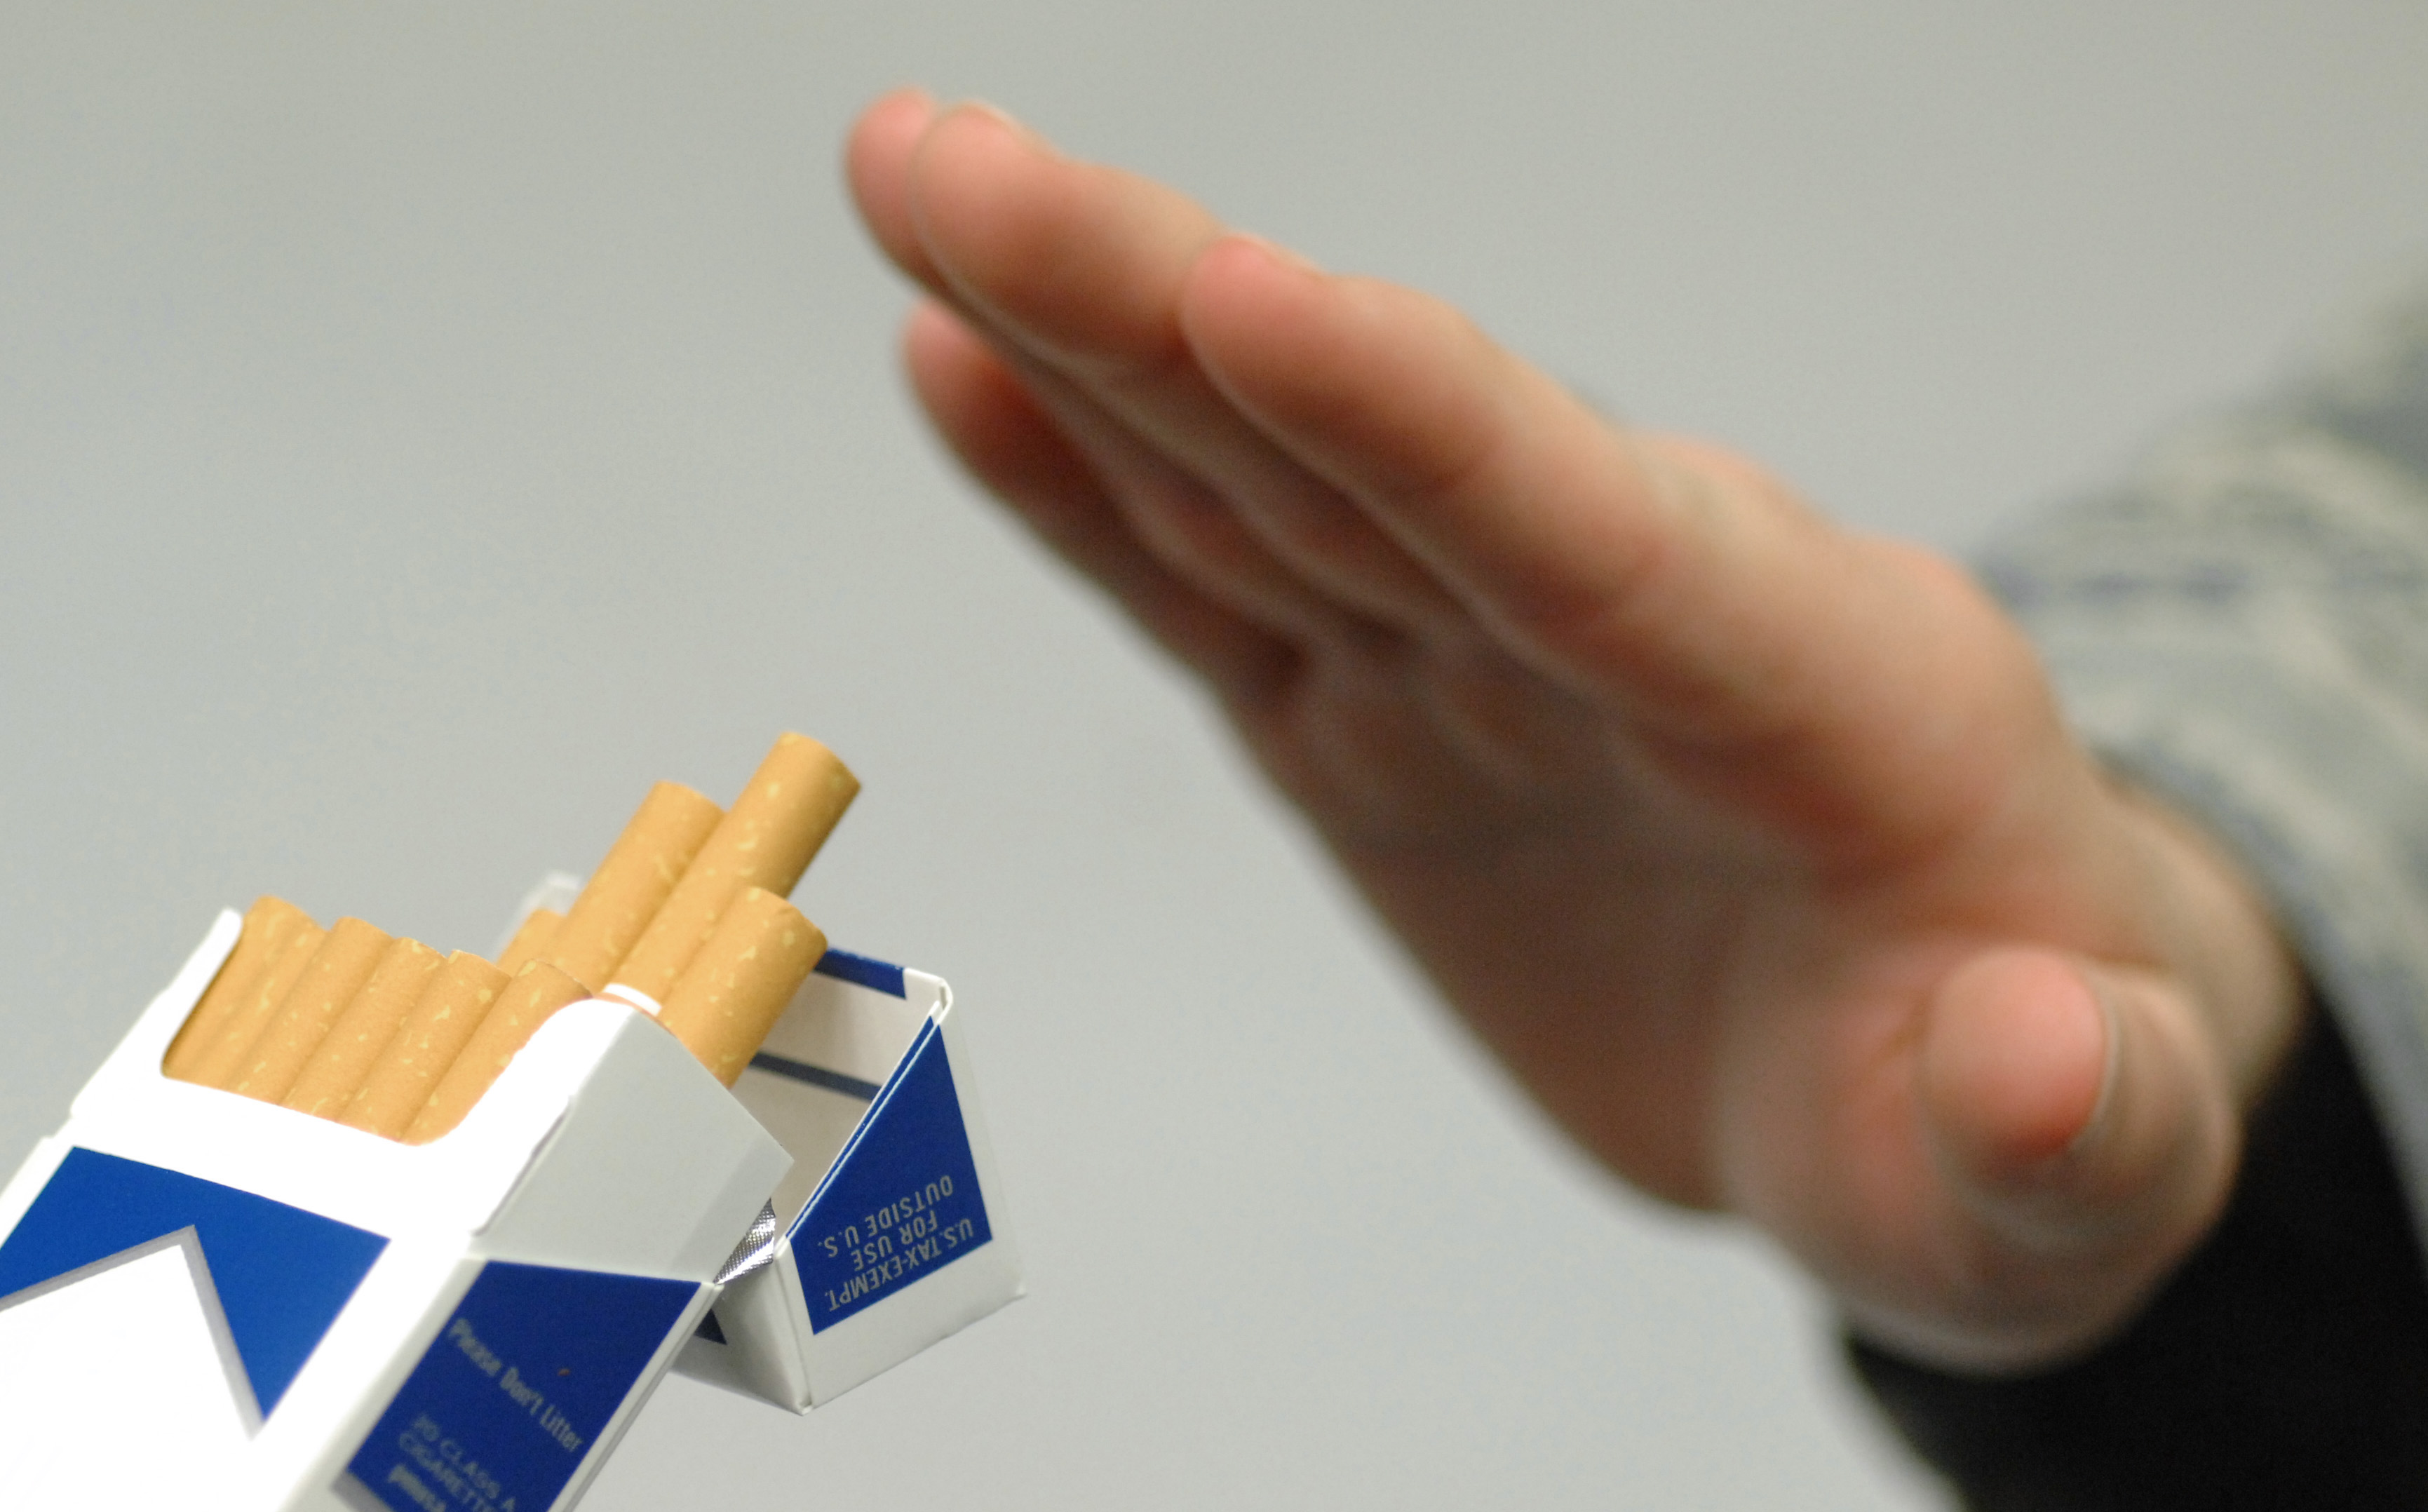 The casual acceptance of smoking was common place when the American Cancer Society's Great American Smokeout became nationwide more than 30 years ago. The first national Great American Smokeout was in November 1977. This quarter century has brought about dramatic changes in the way society views tobacco use. Approximately 46 million adults in the United States currently smoke, an estimated half will die prematurely from diseases considered smoking related.  November is also Tobacco Awareness Month.  Ramstein Air Force base's Health and Wellness Center hosts many ways for Airman and their family's to kick the habit, to include Smoking Speciation classes, Behavioral Classes and tobacco free nicotine substitutes to assist with cravings that may otherwise sabotage a smoker's attempt to quit. (U.S. Air Force illustration by Airman 1st Class Perry)